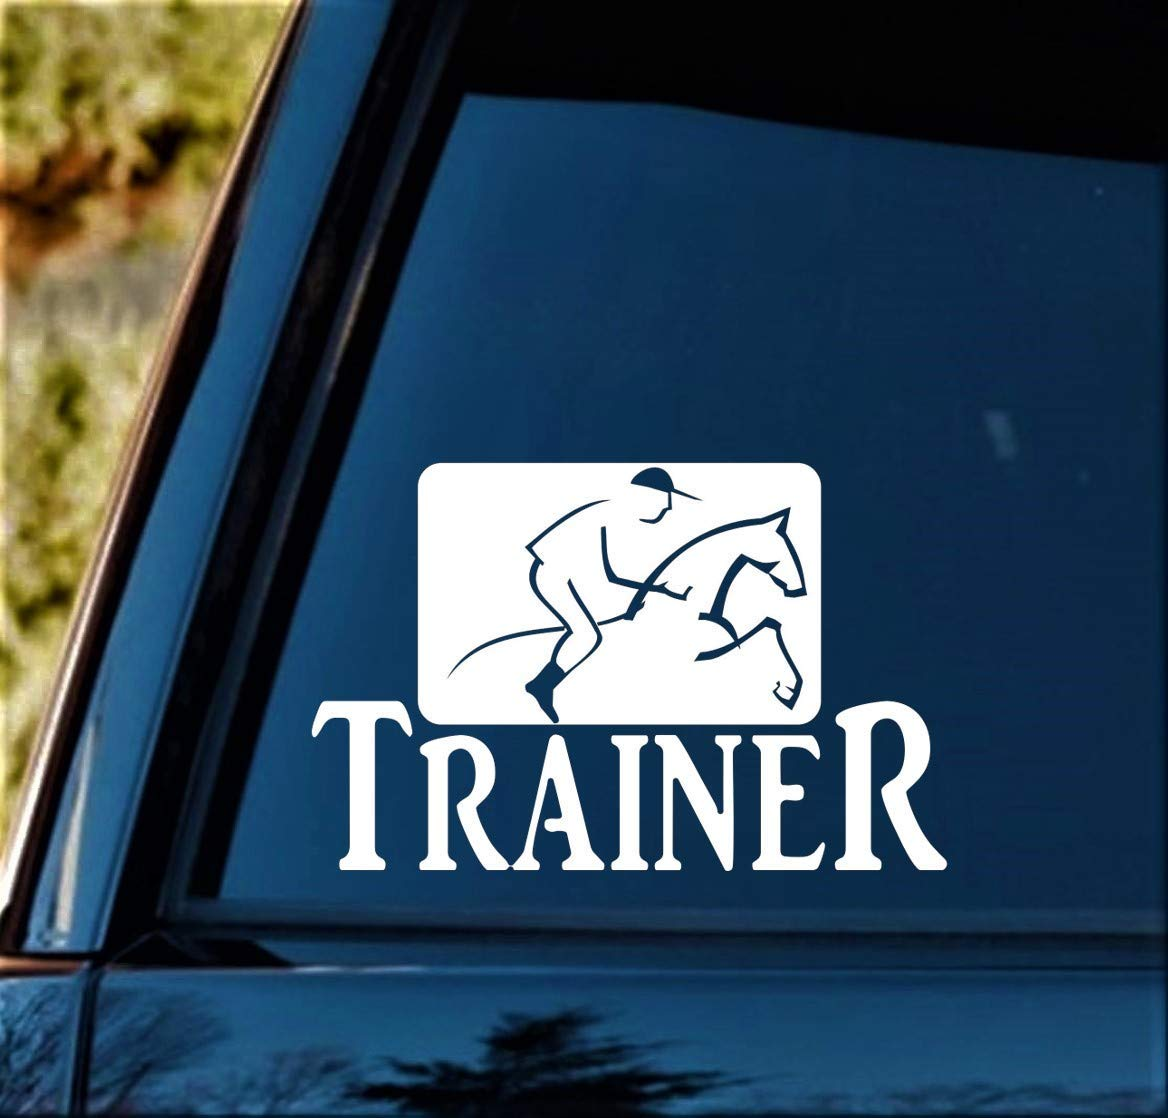 Horse Trainer Riding Decal Sticker for Car Window 7 Inch BG 314